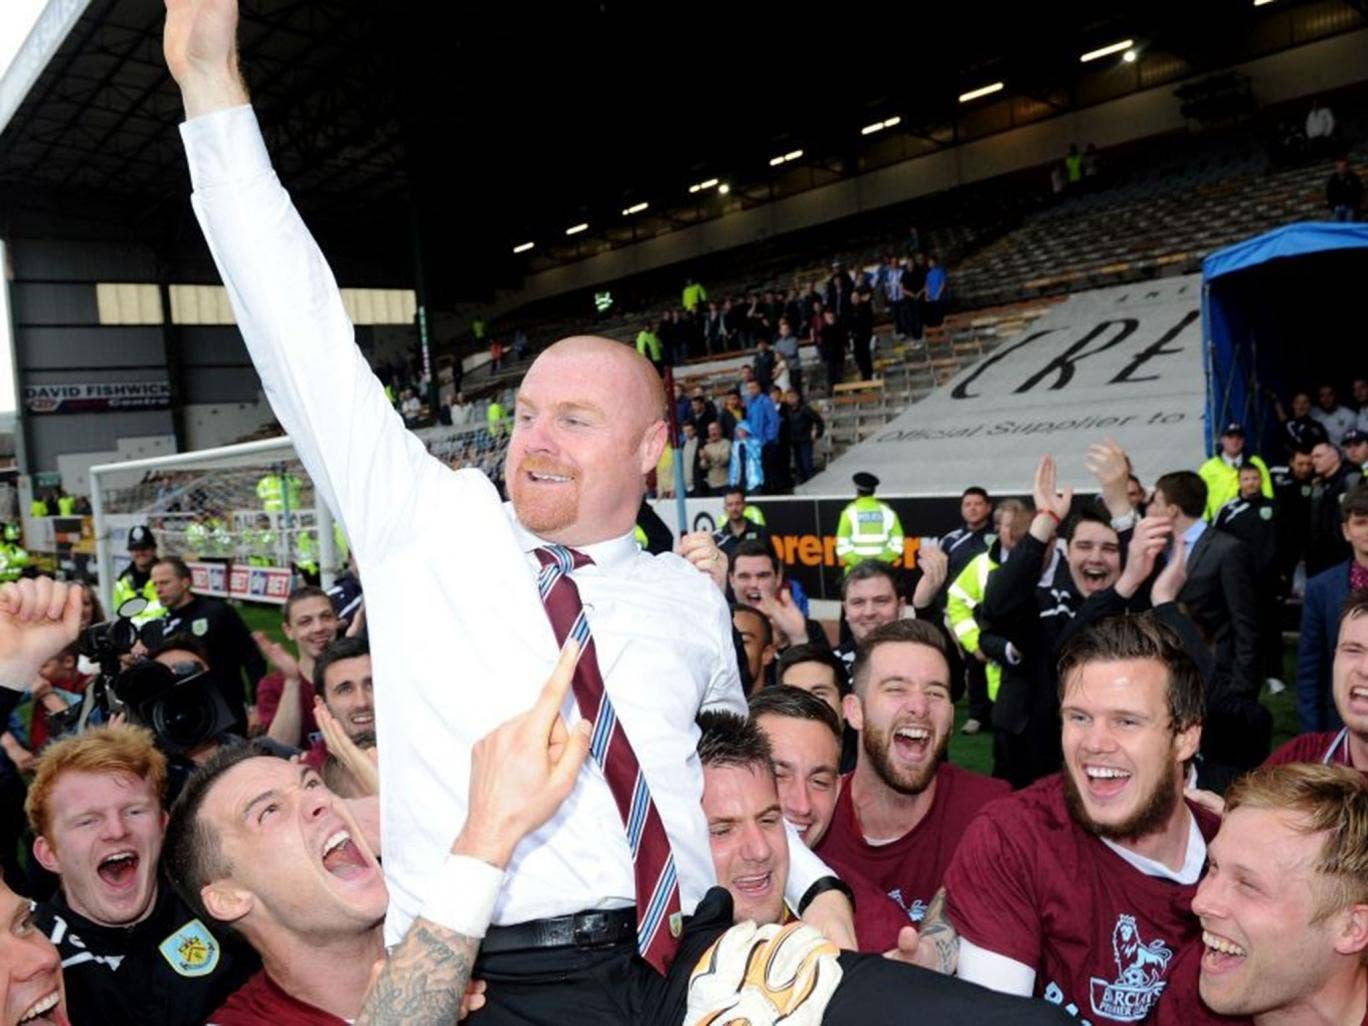 Burnley's manager Sean Dyche celebrates after his side win promotion to the English Premier League during their championship match at Turf Moor, Burnley England